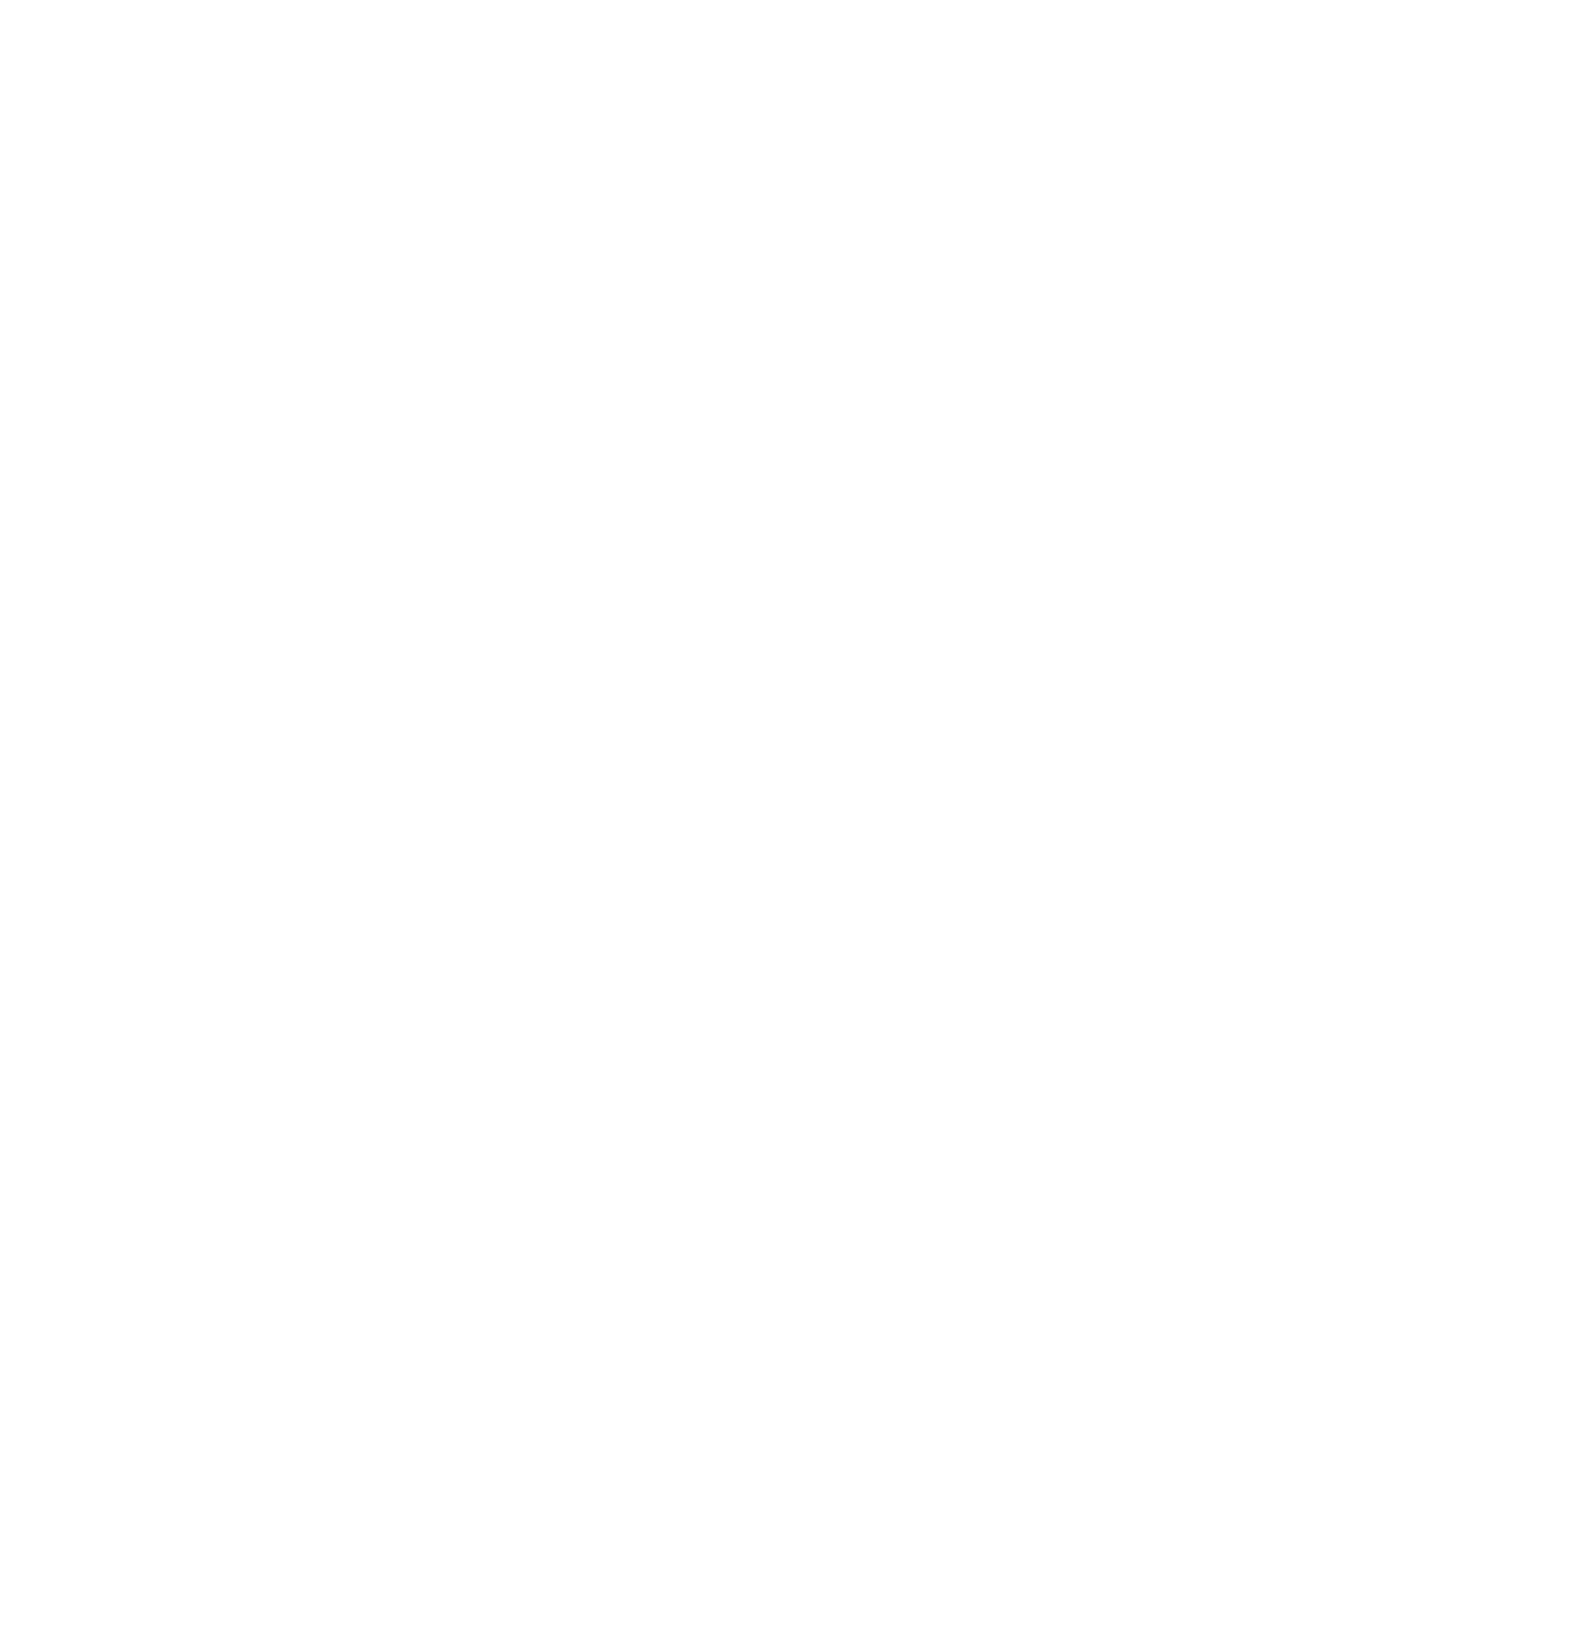 MYMOLLSEYE PRODUCTIONS